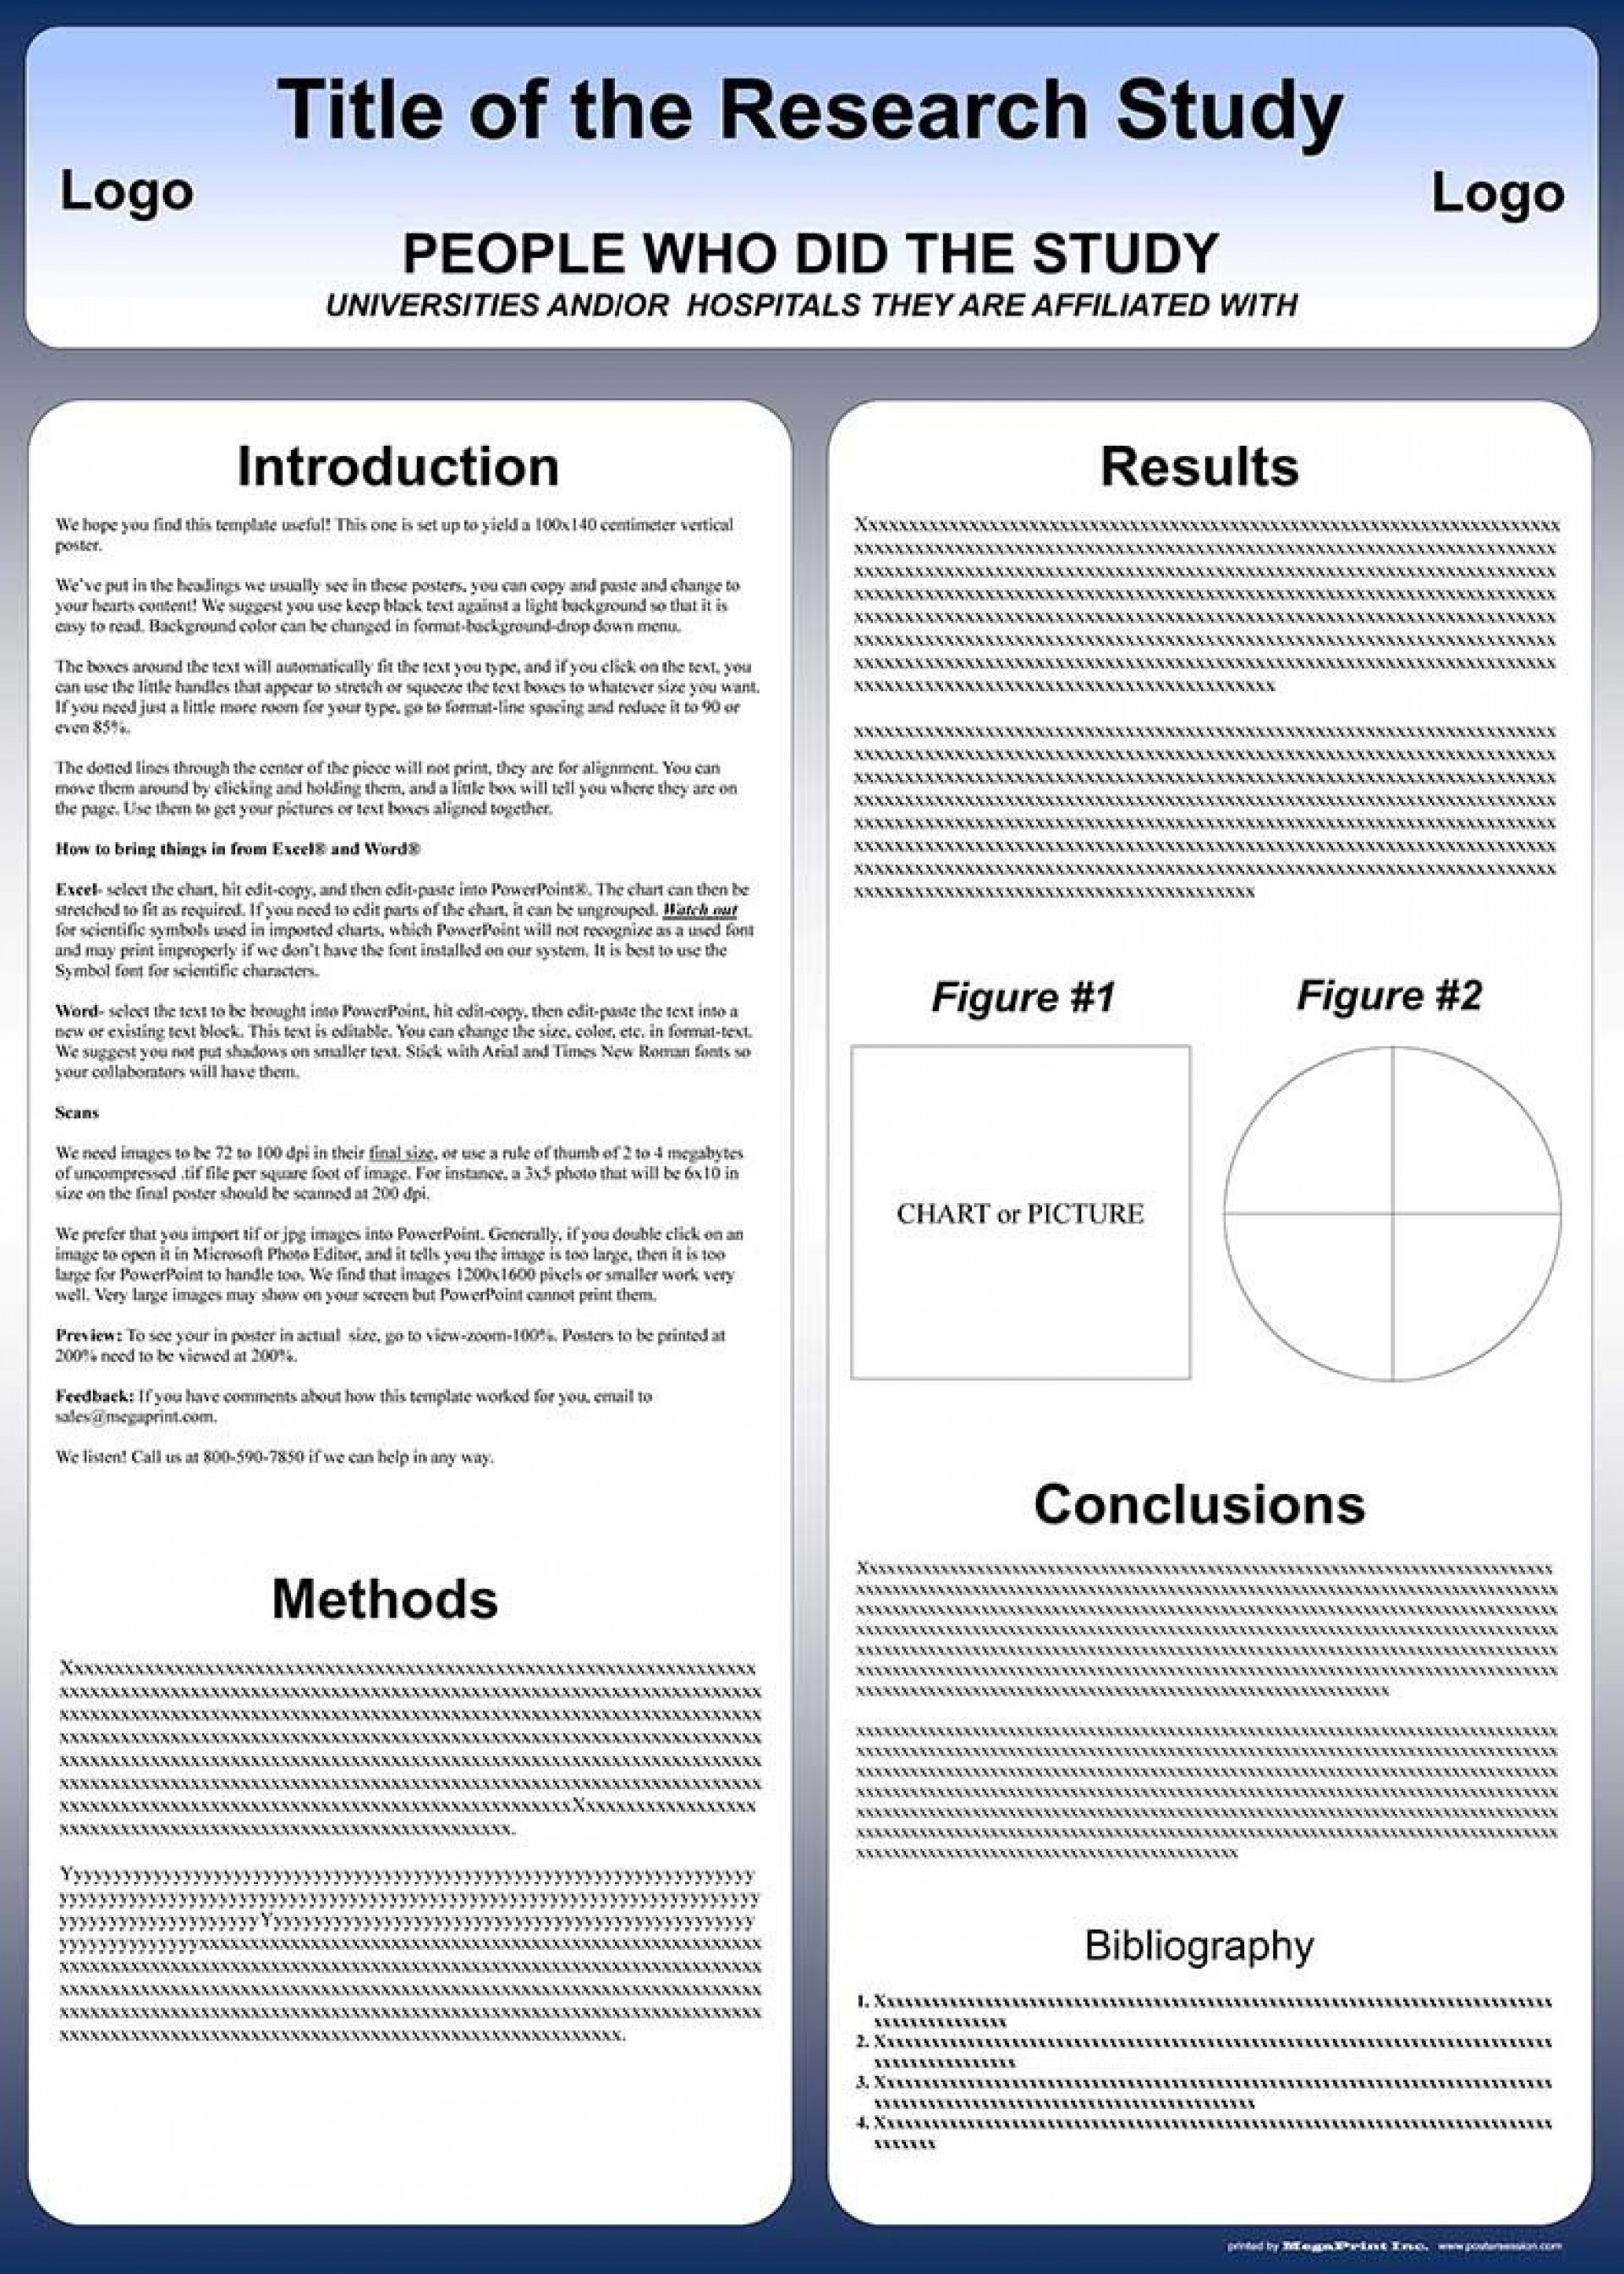 006 Shocking Scientific Poster Presentation Template Free Download Picture 1920